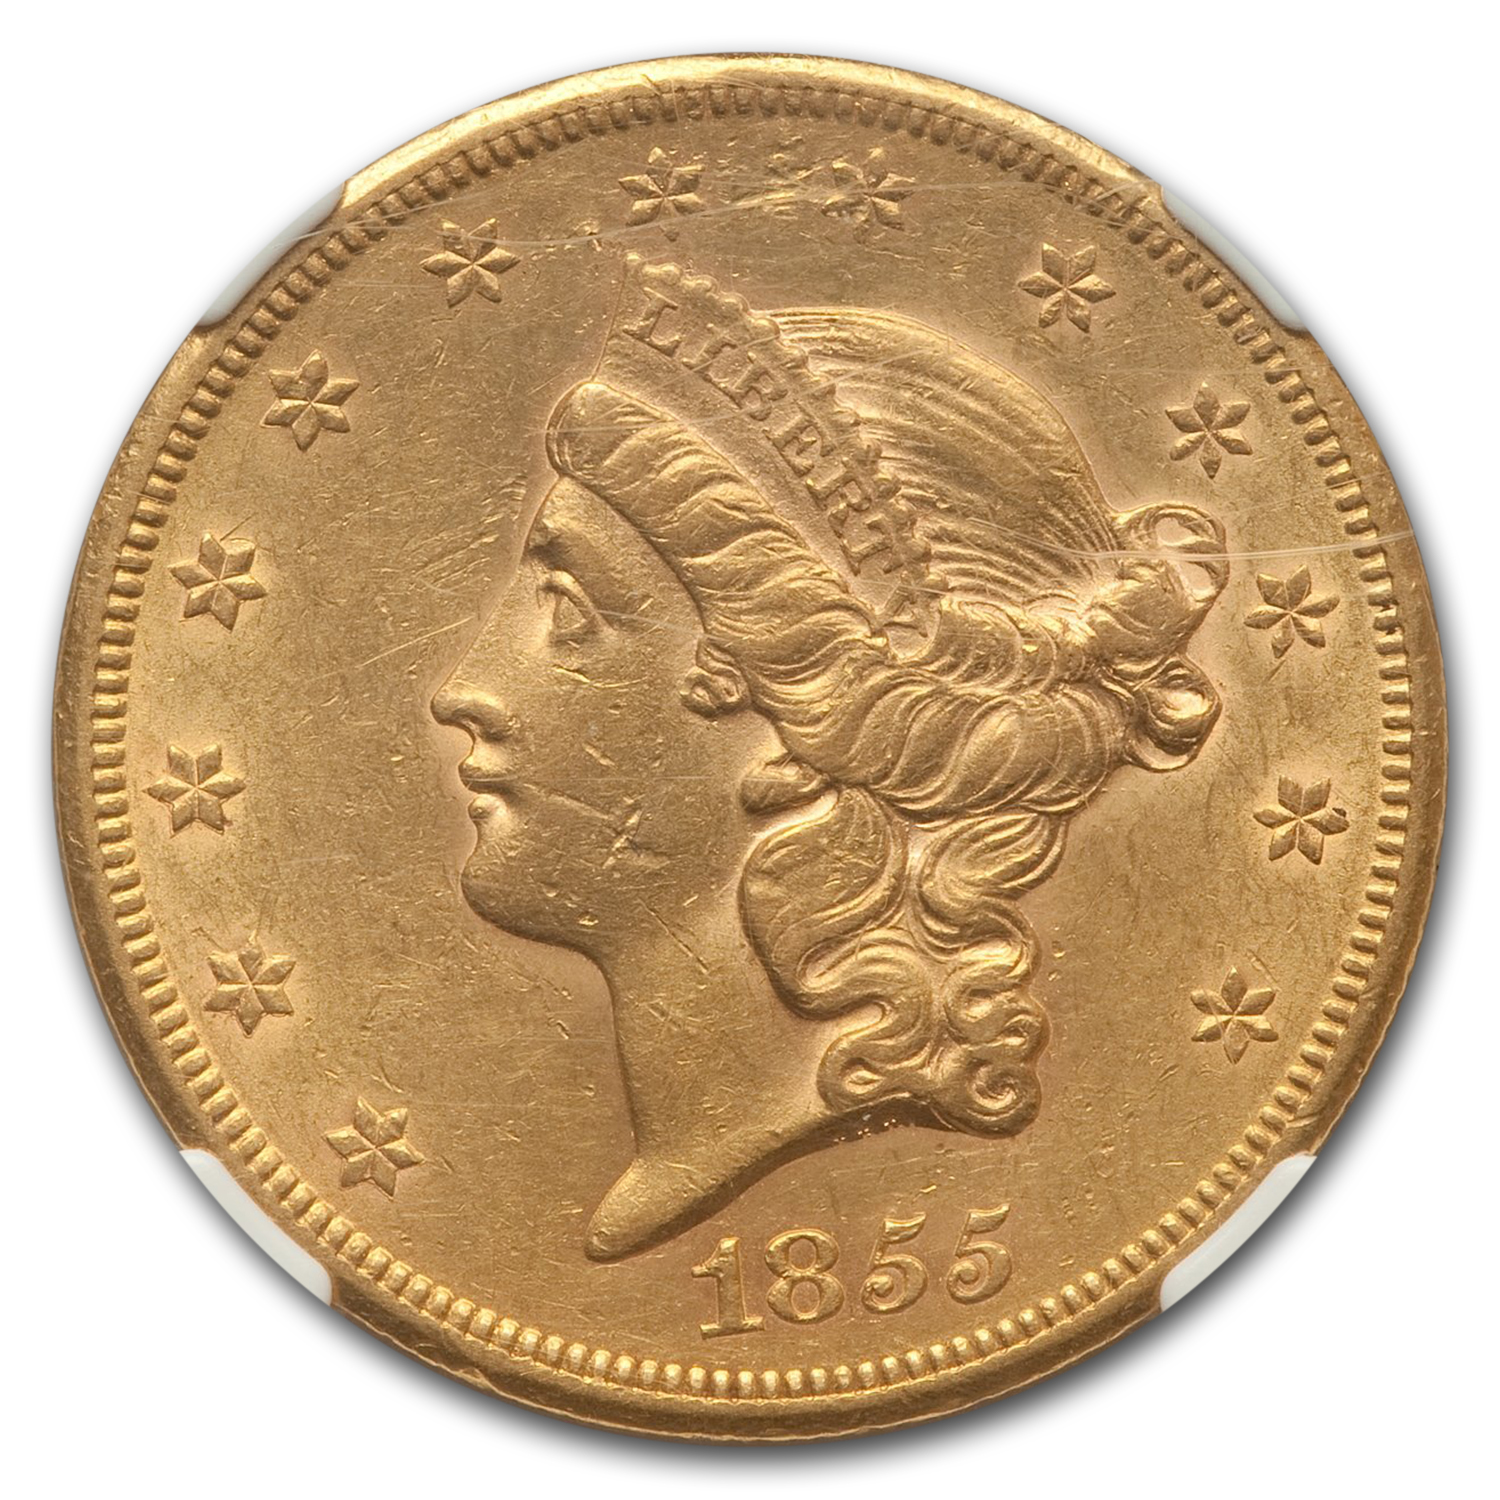 1855-S $20 Liberty Gold Double Eagle Almost Unc - 53 NGC